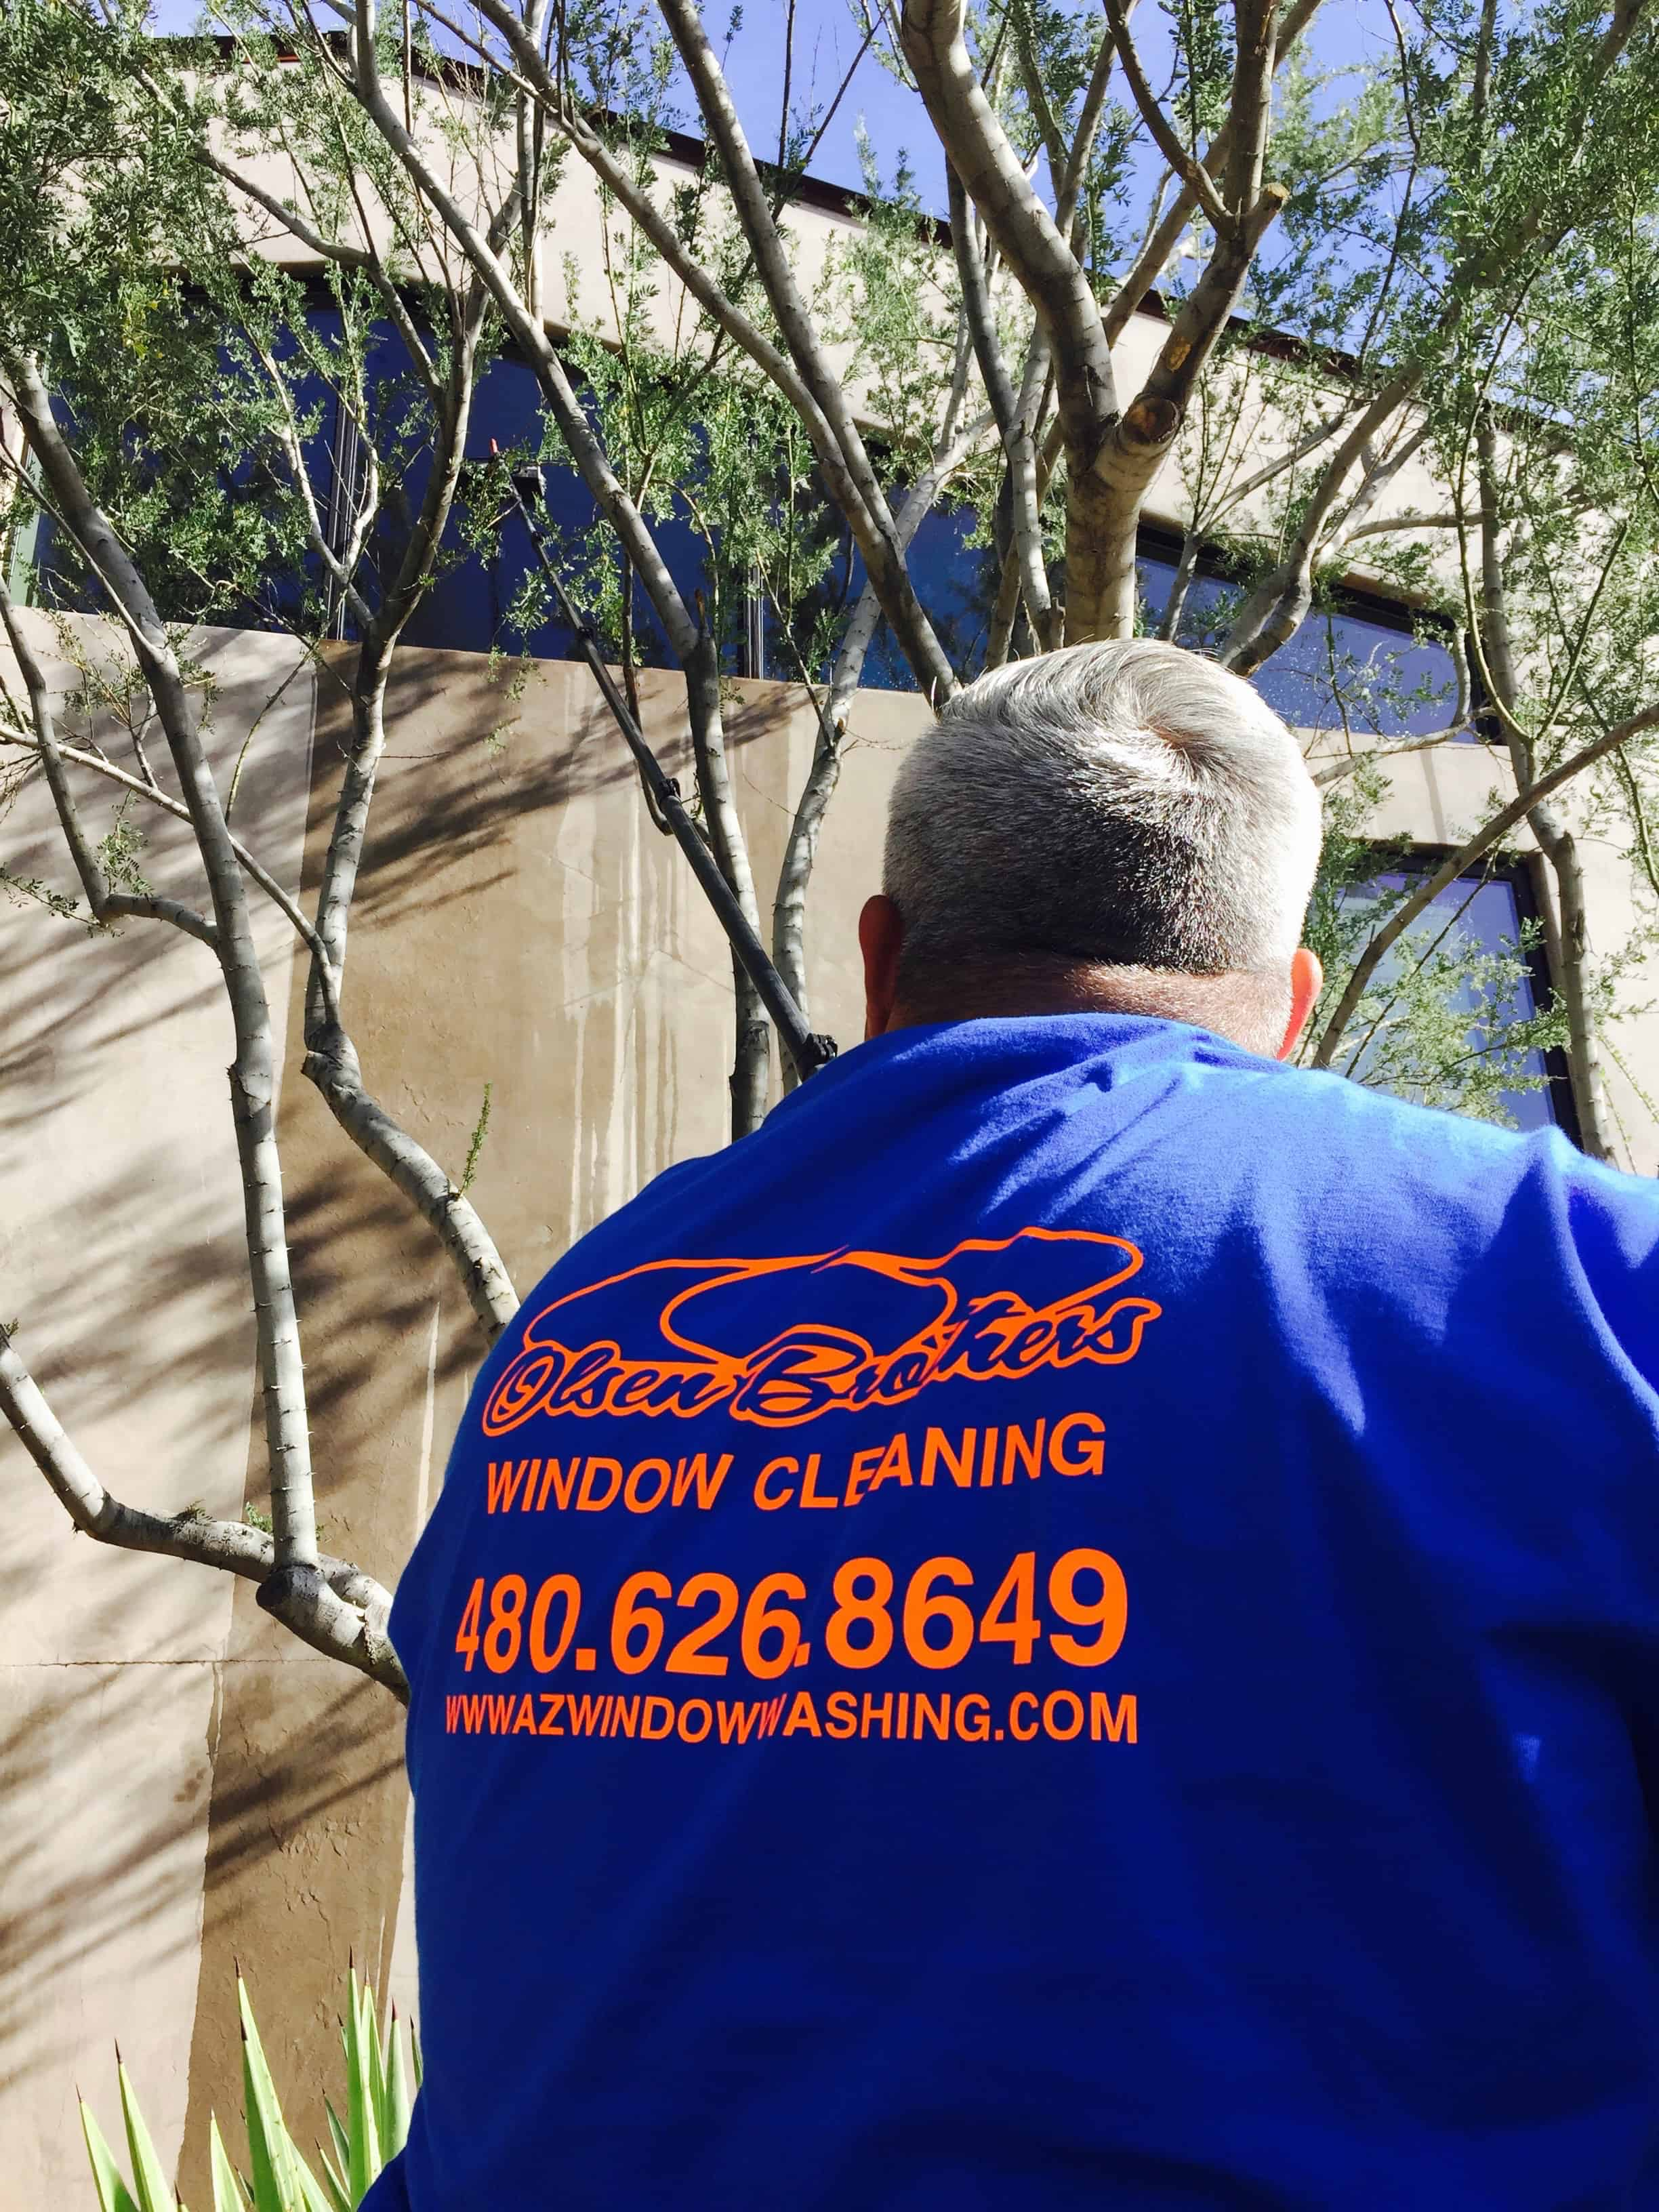 Olsen Brothers window cleaning in Fountain Hills, AZ